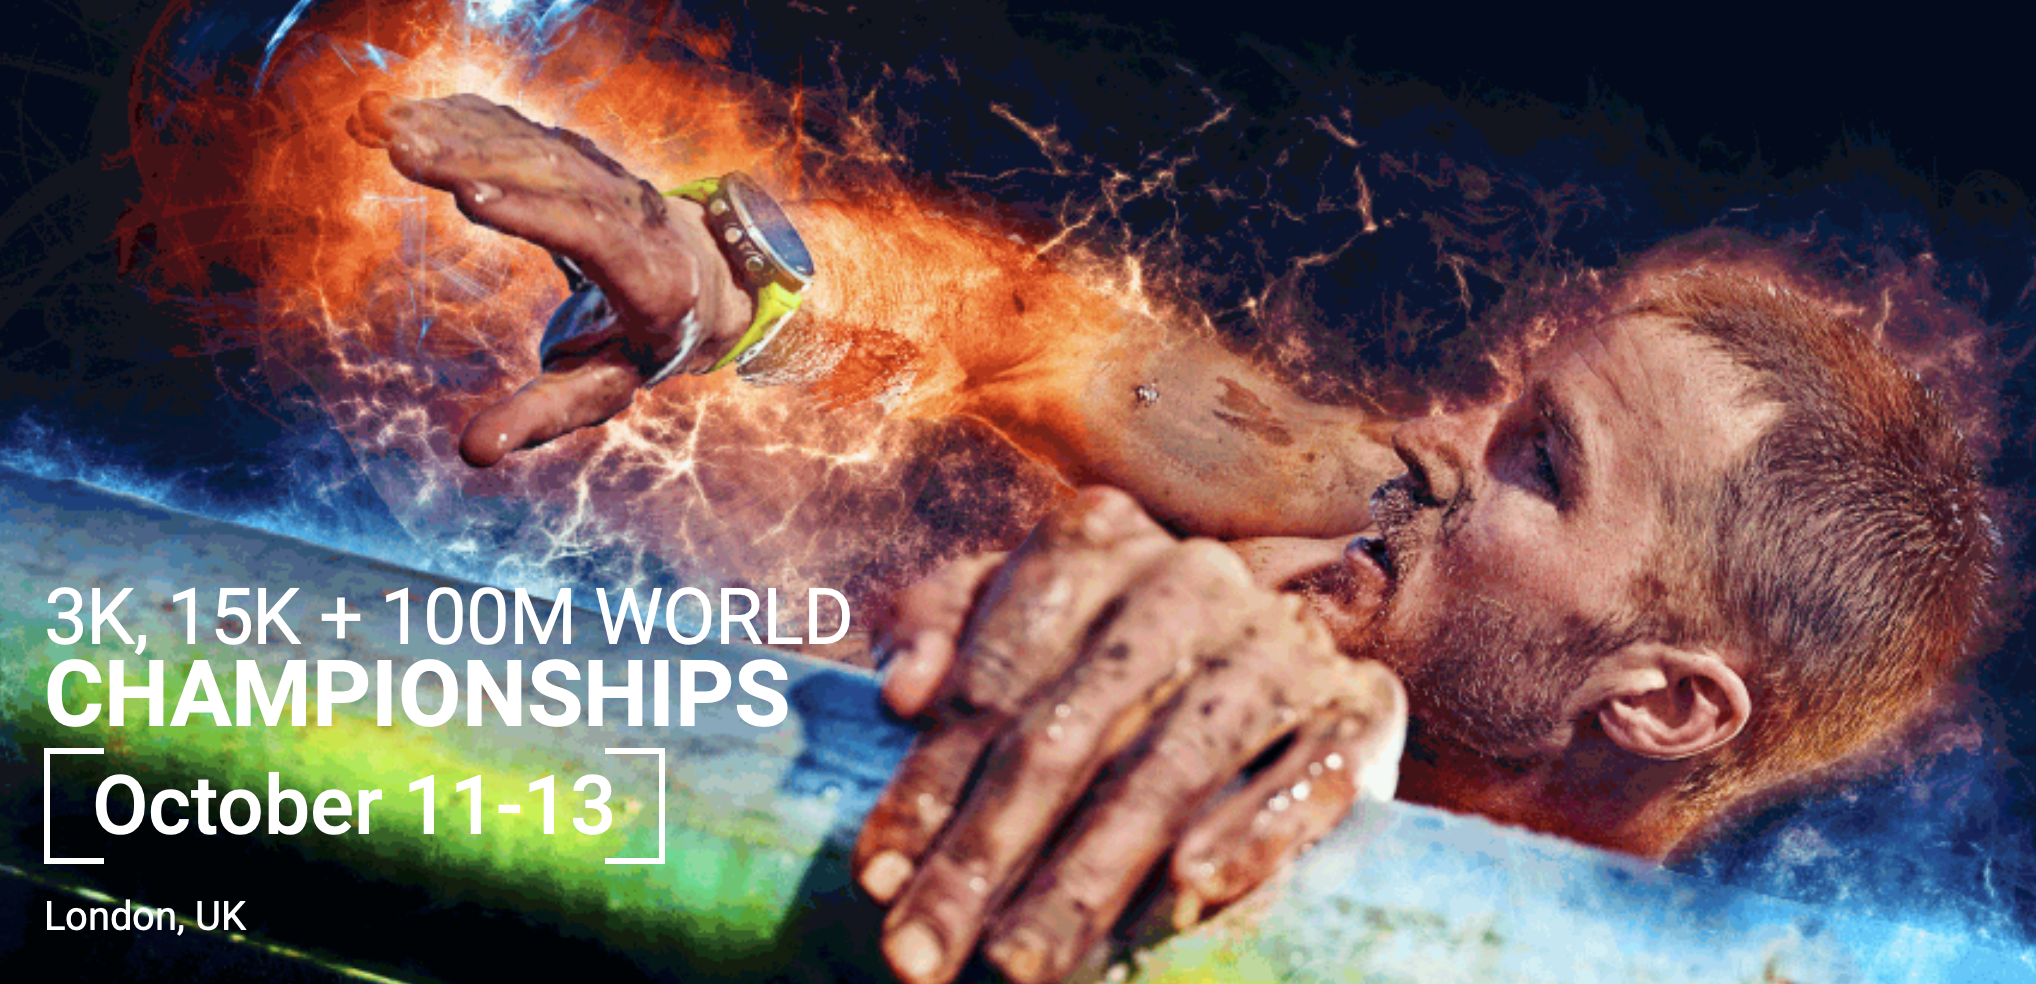 Warriors compete in OCR World Championships